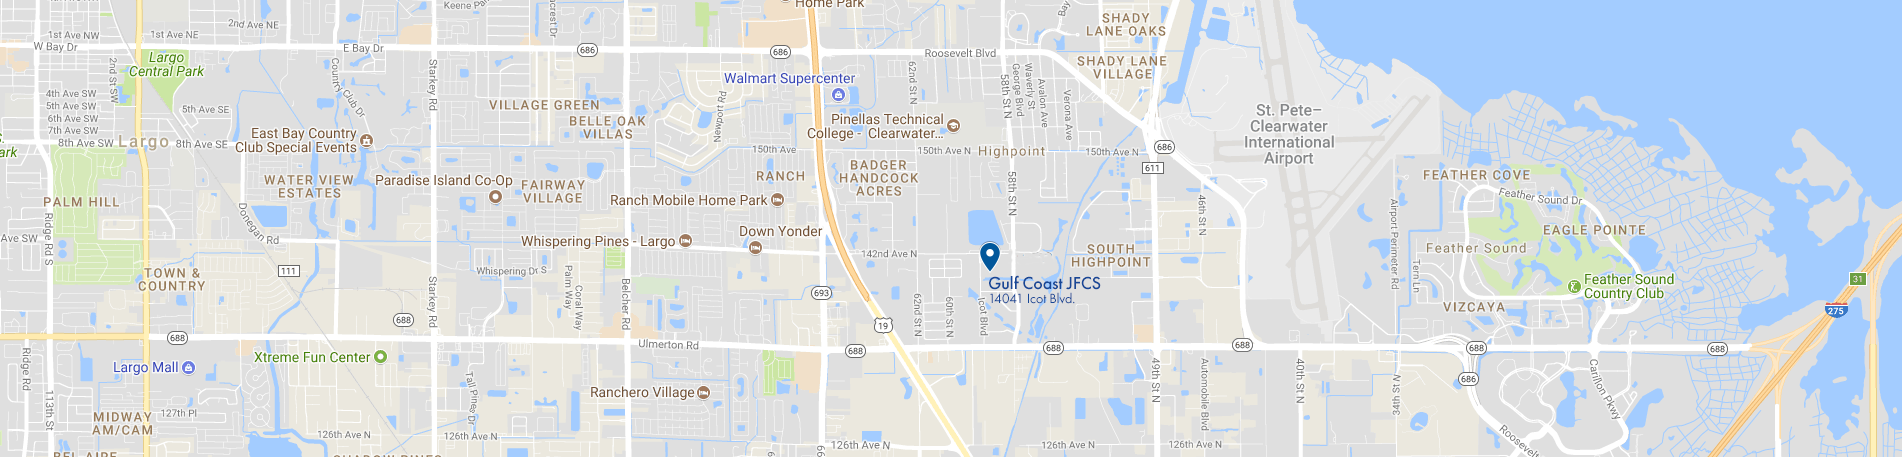 Map, location of Gulf Coast JFCS office